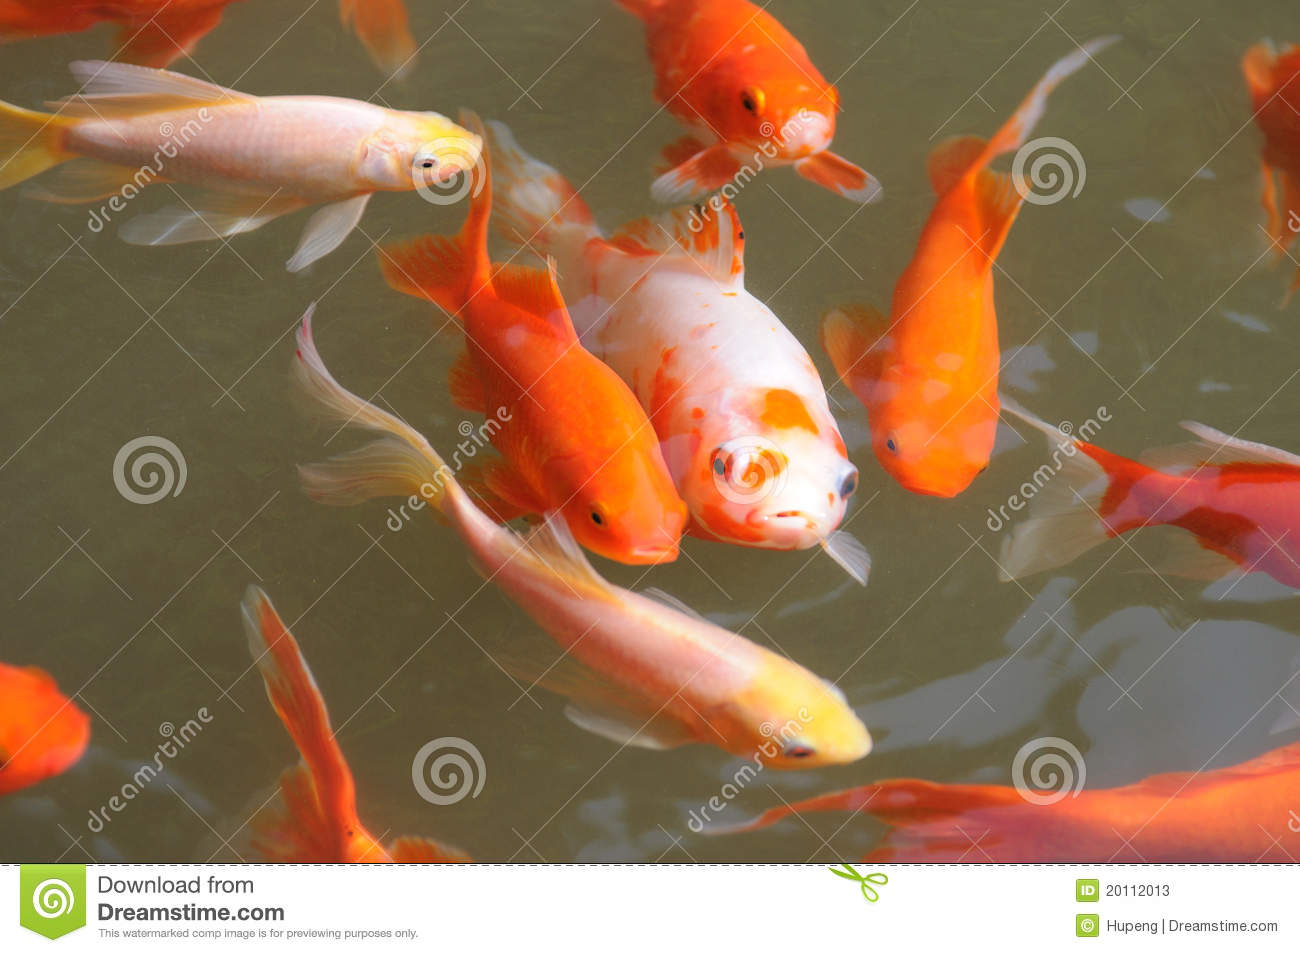 Colorful koi fish swimming in water stock illustration for Colourful koi fish